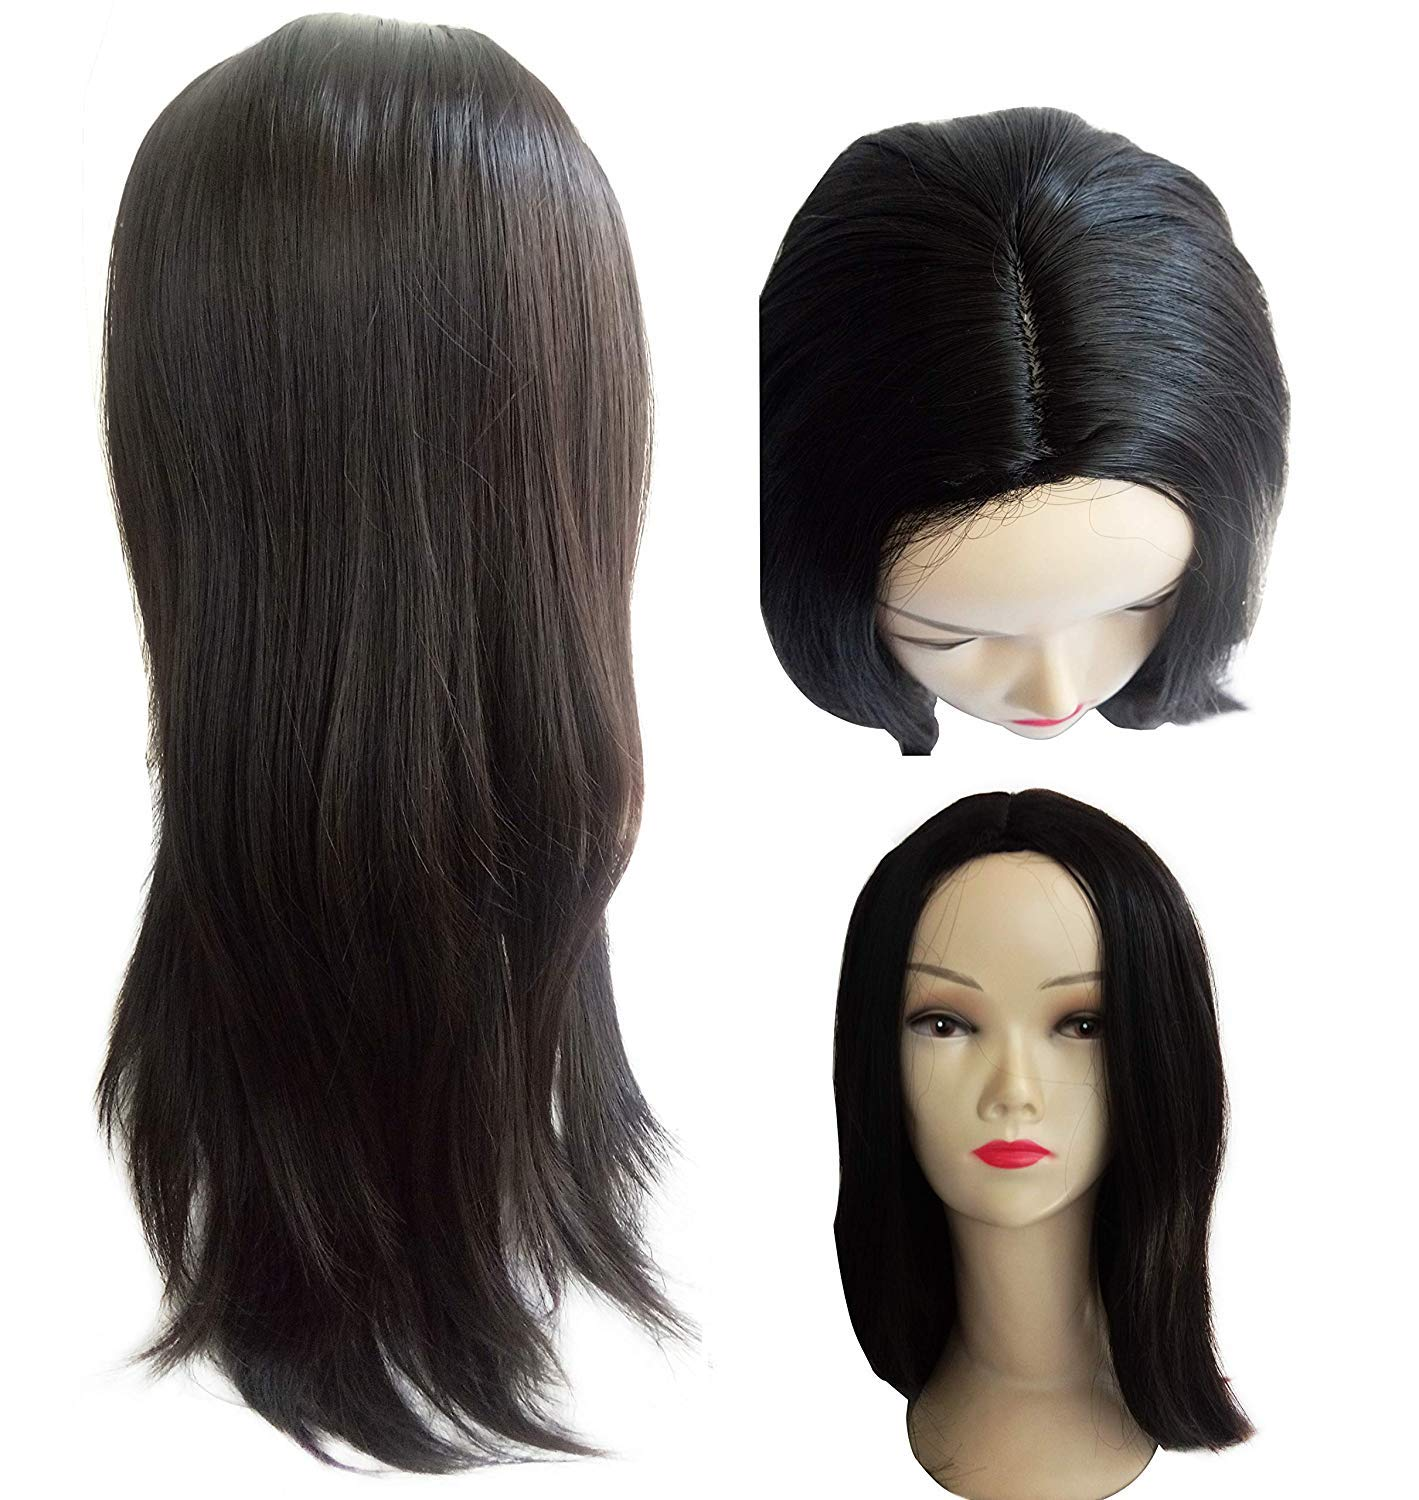 Click to open expanded view Foreign Holics Full Head Hair Wigs long 24 Inches Natural Color